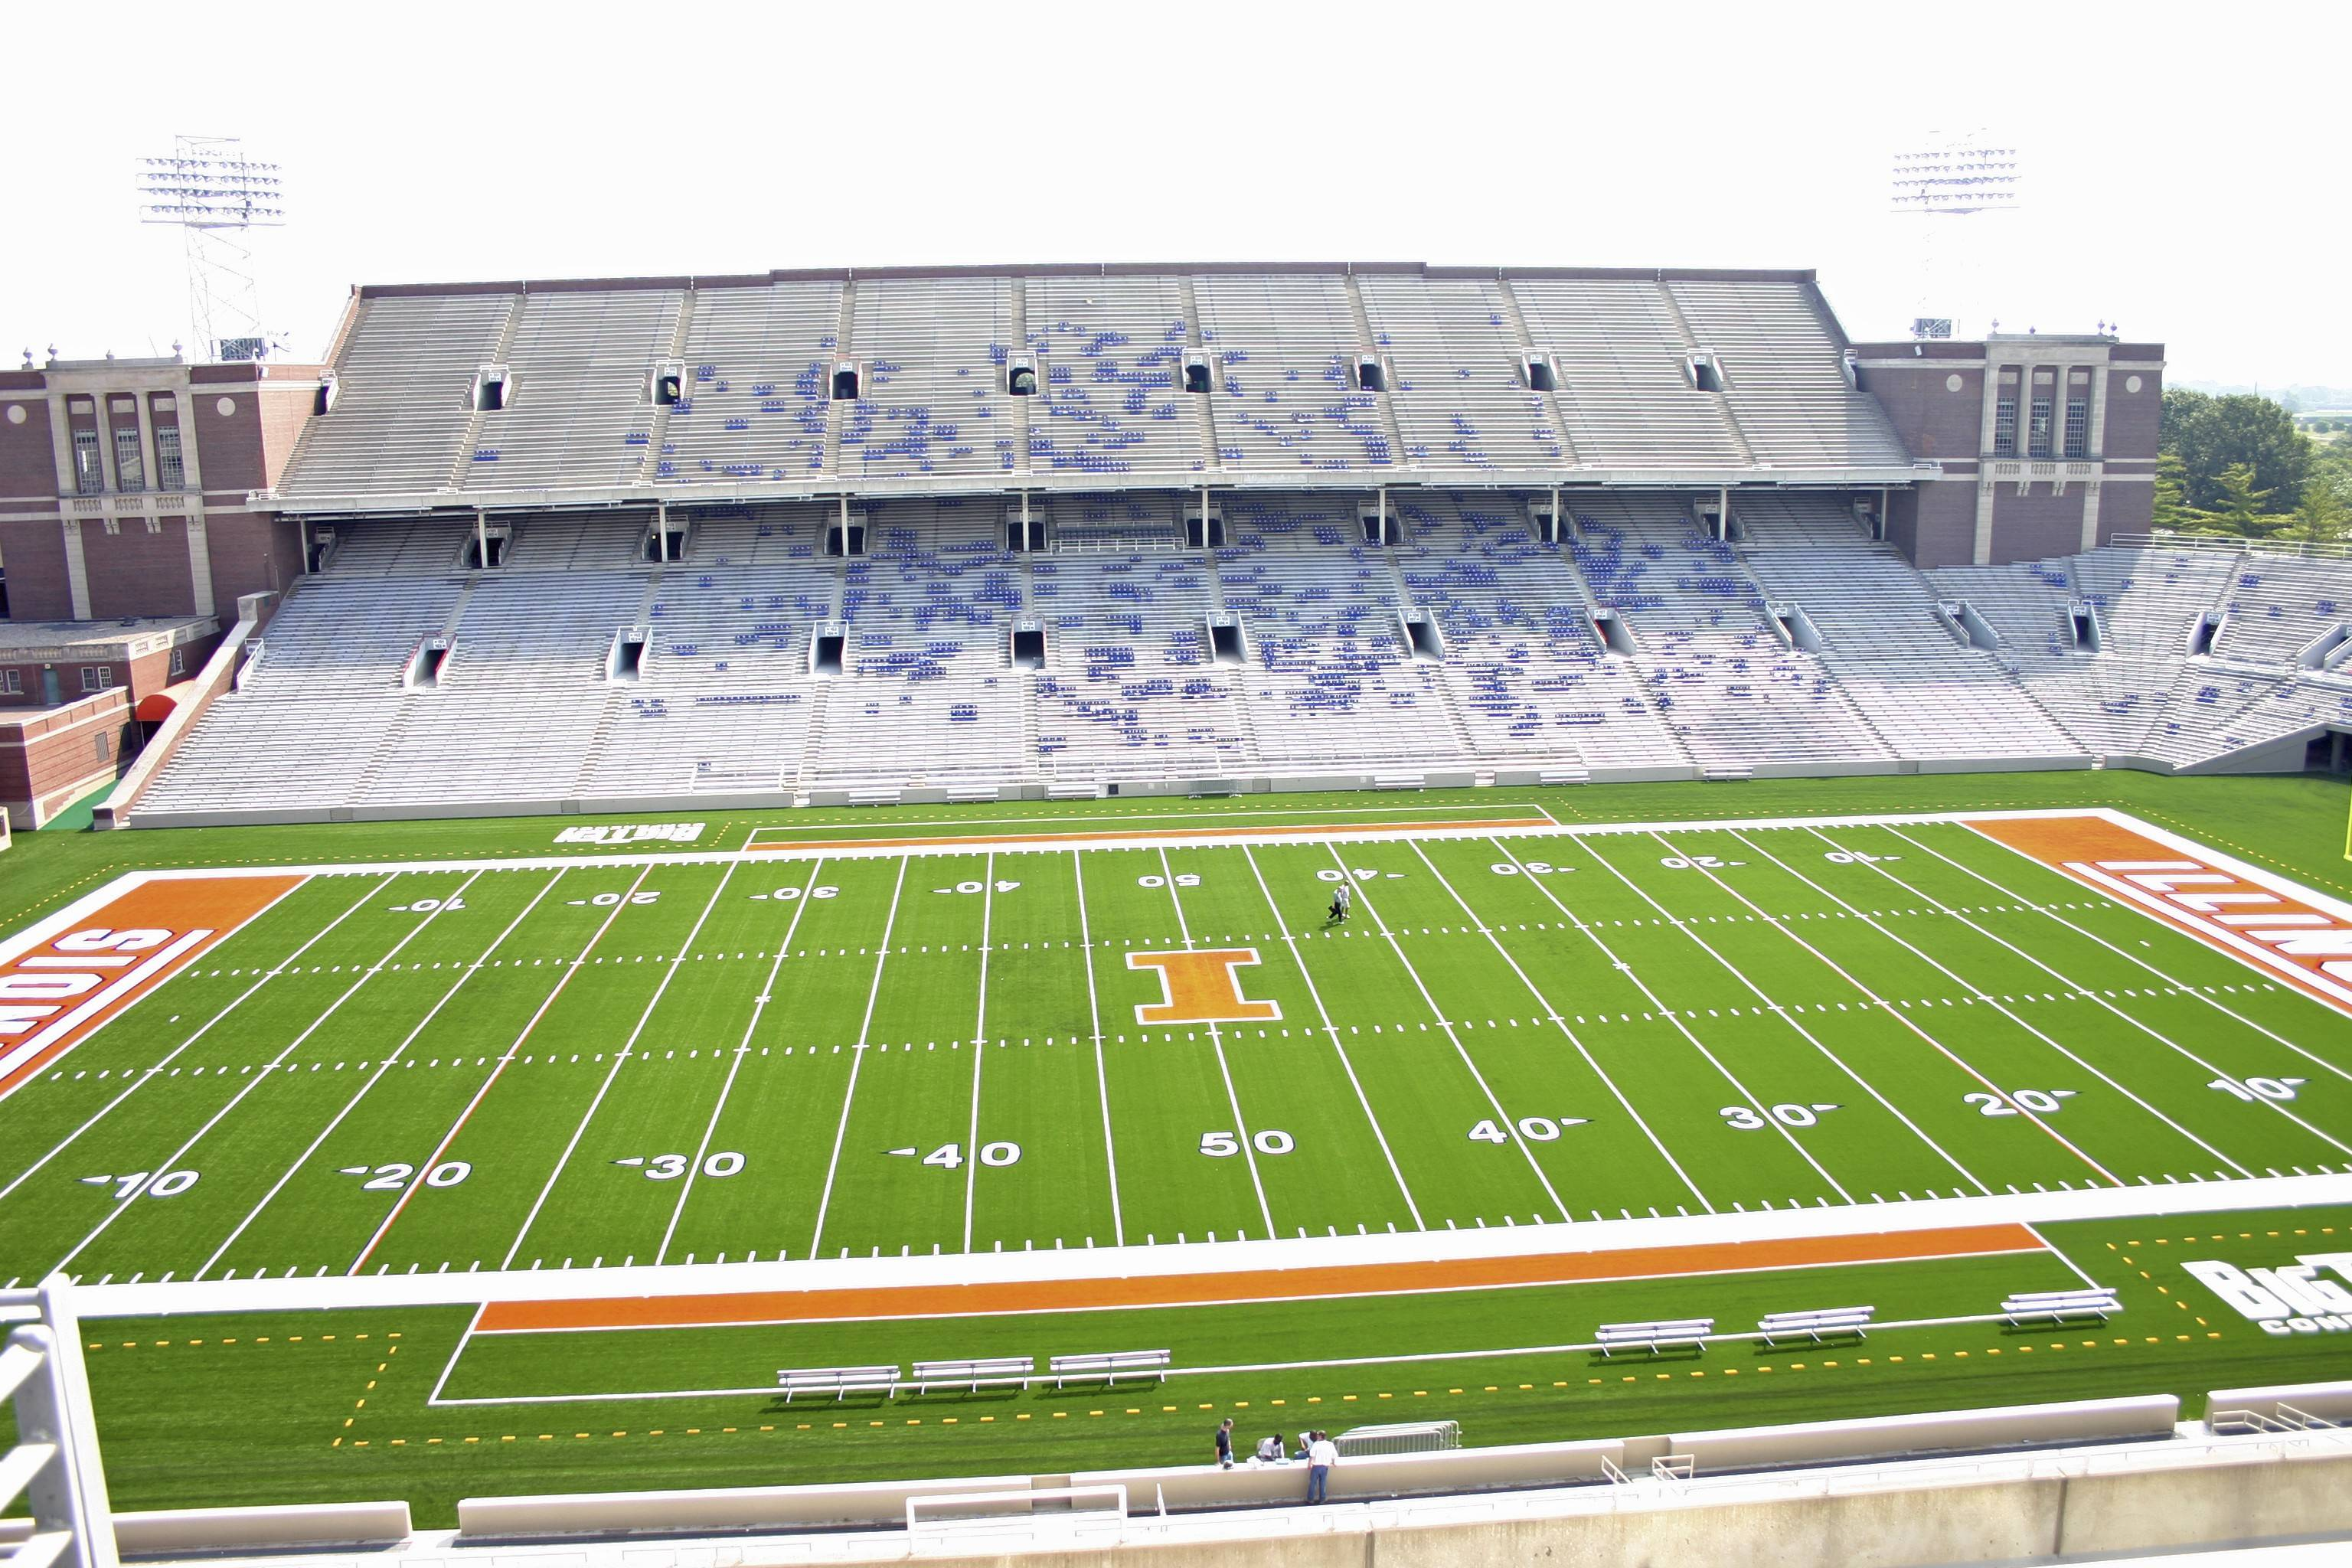 The University of Illinois also is looking into its options, including price points, for adding wireless access at the stadiums in Champaign.